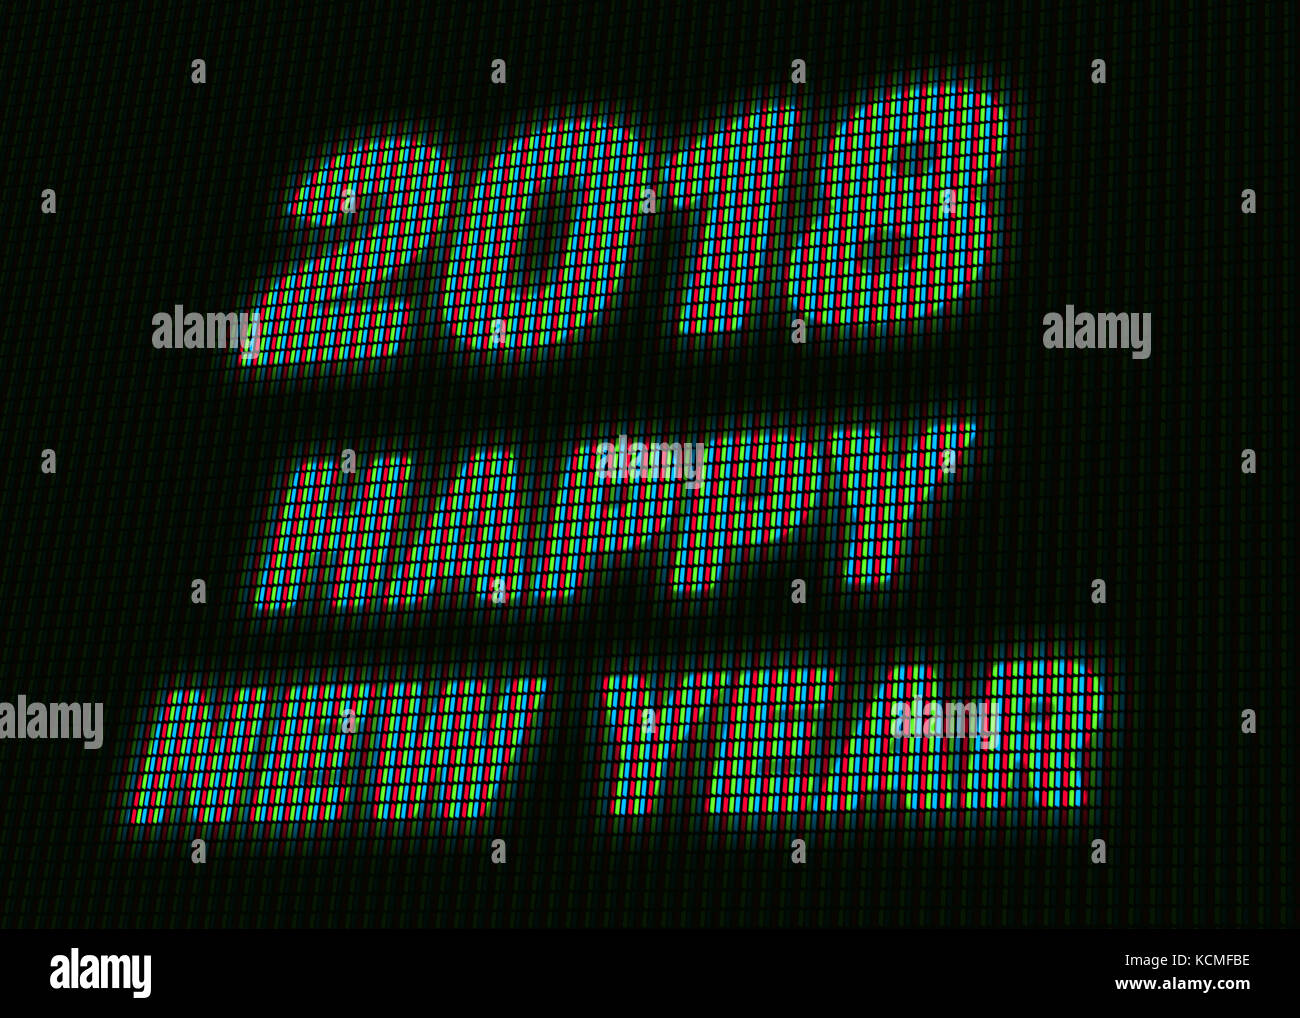 2018 happy new year message on the led billboard screen